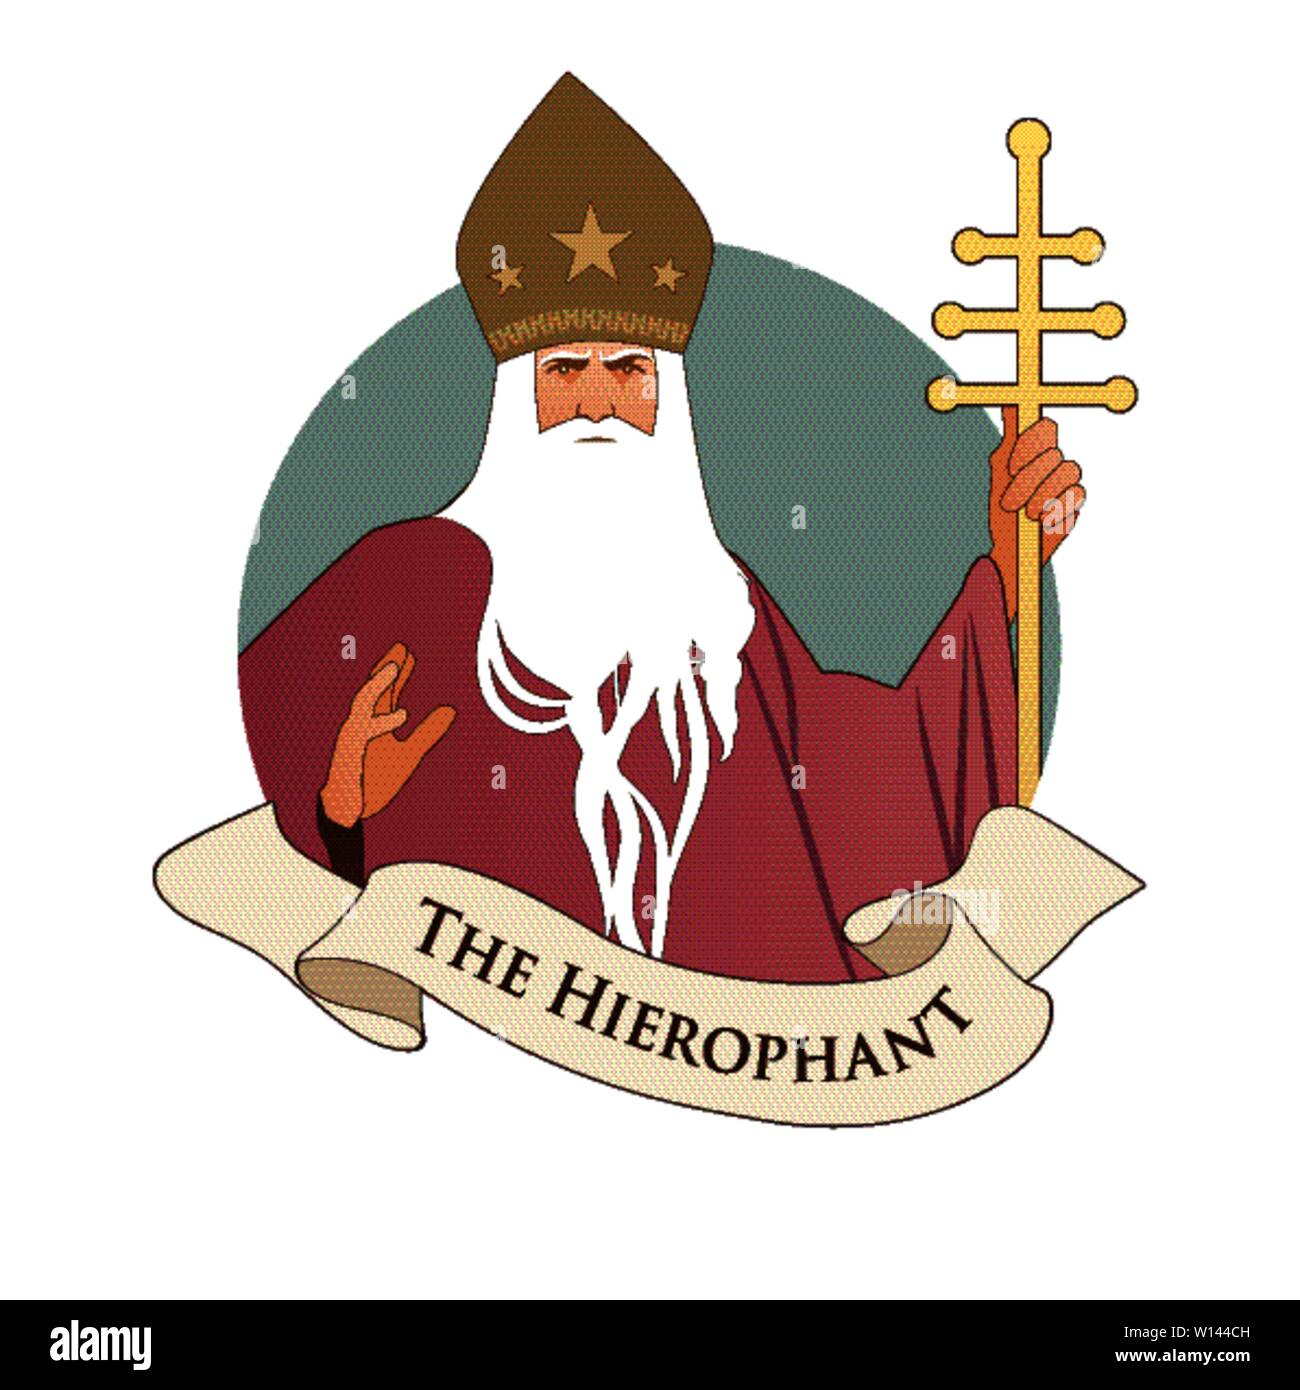 Major Arcana Emblem Tarot Card. The Hierophant. Pope with white beard and miter with stars, holding a golden crosier, blessing with his right hand, is - Stock Image